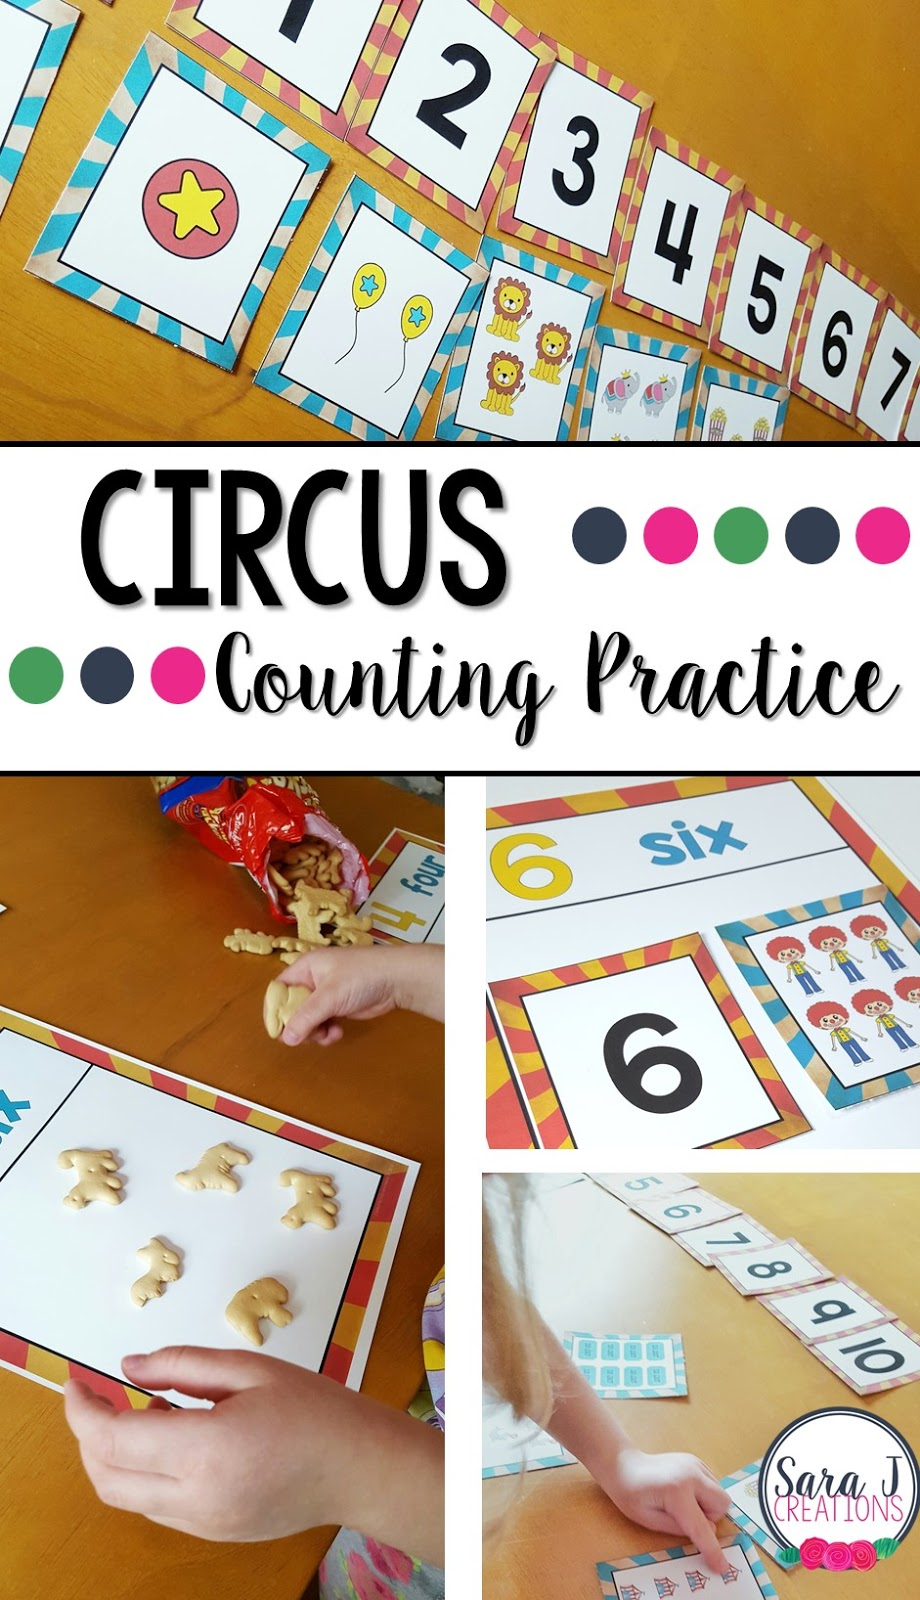 Cute ideas for using FREE circus themed number cards to practice sequencing, matching and 1 to 1 correspondence for numbers 1-10.